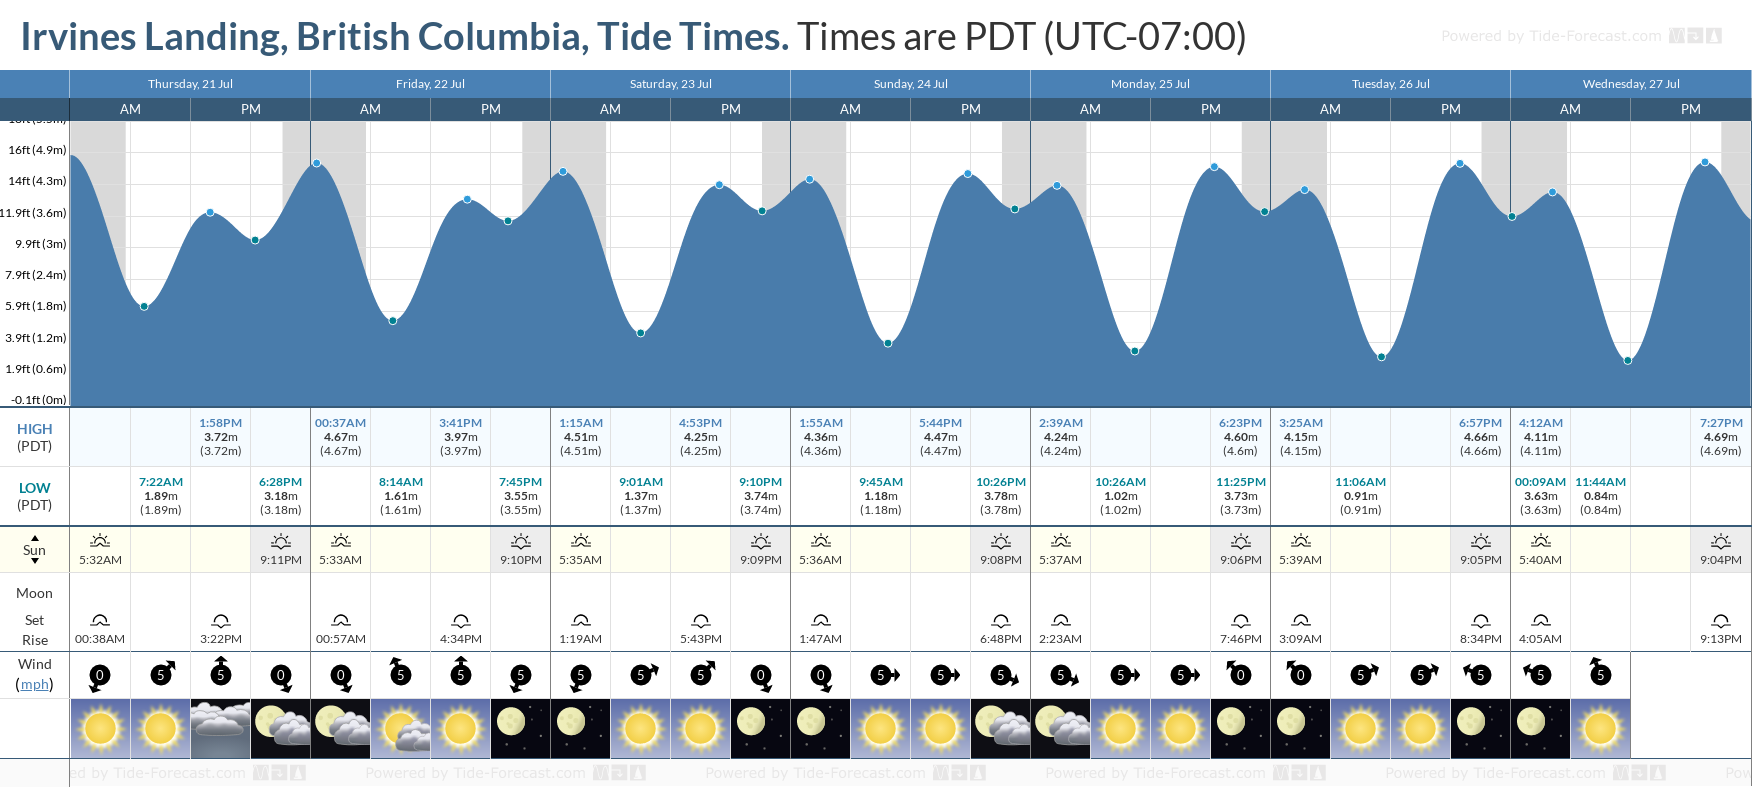 Irvines Landing, British Columbia Tide Chart including high and low tide tide times for the next 7 days